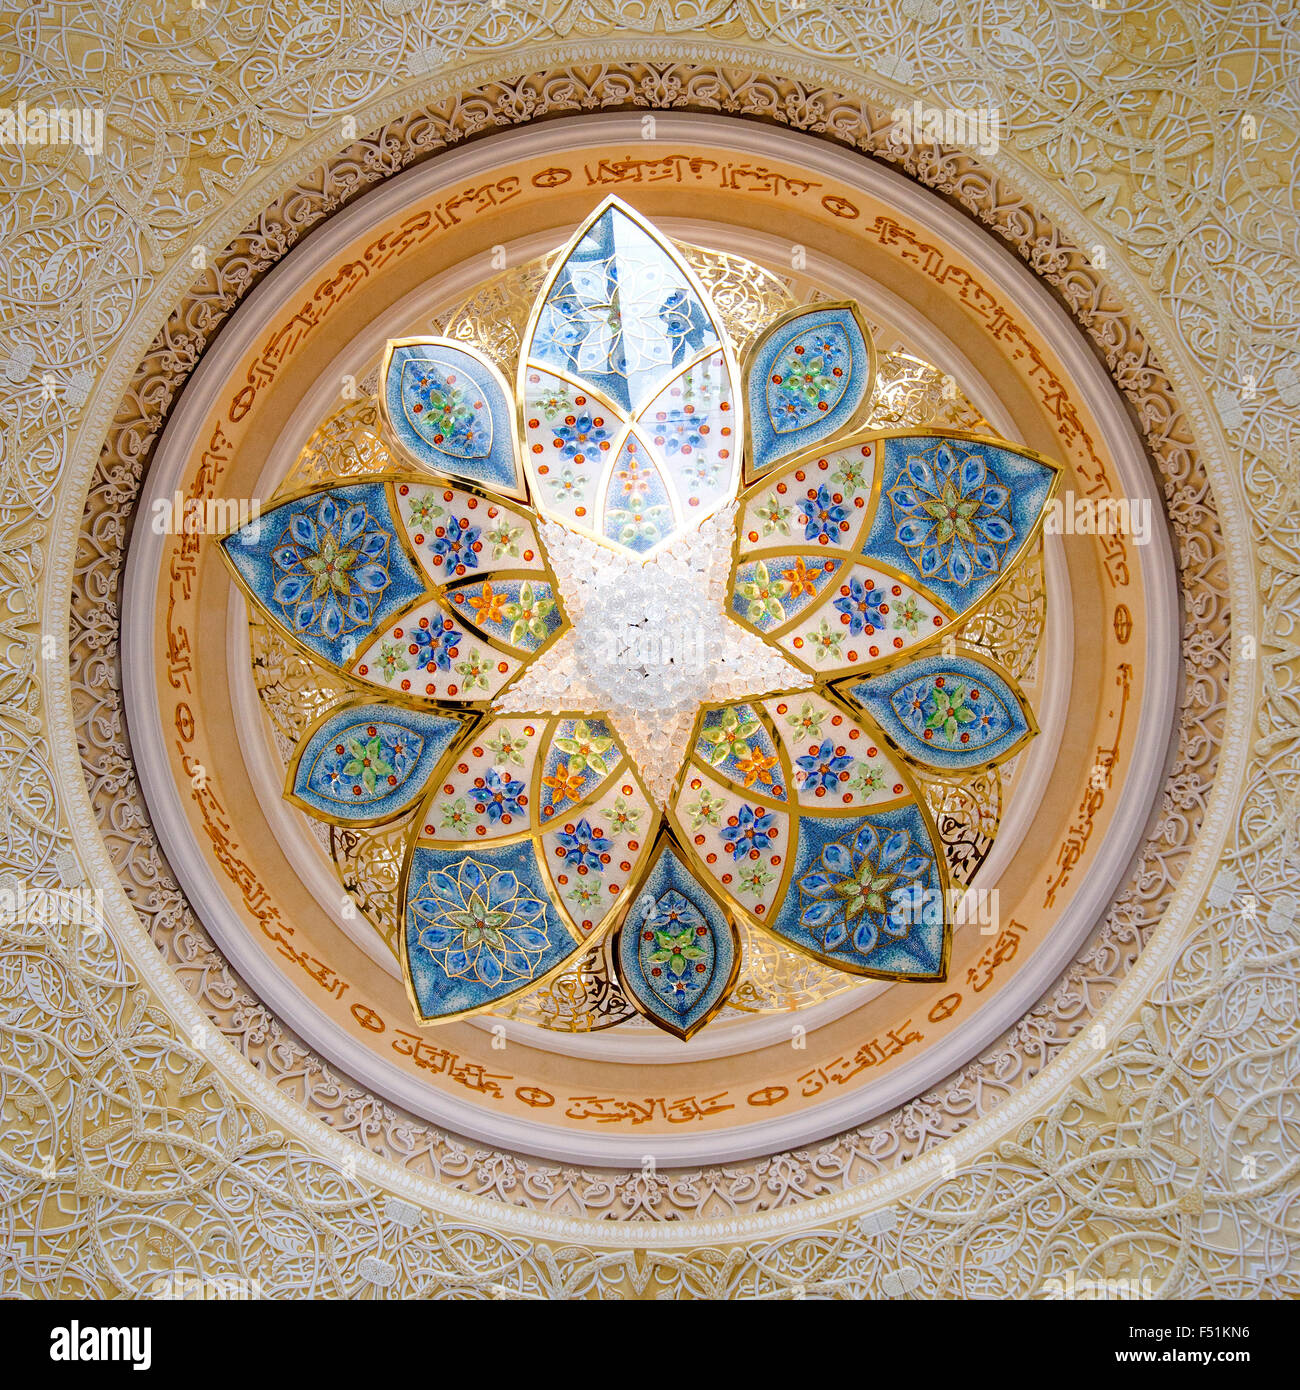 Decoration at the entrance of the prayer room of the Sheikh Zayed Grand Mosque in Abu Dhabi in the United Arab Emirates - Stock Image